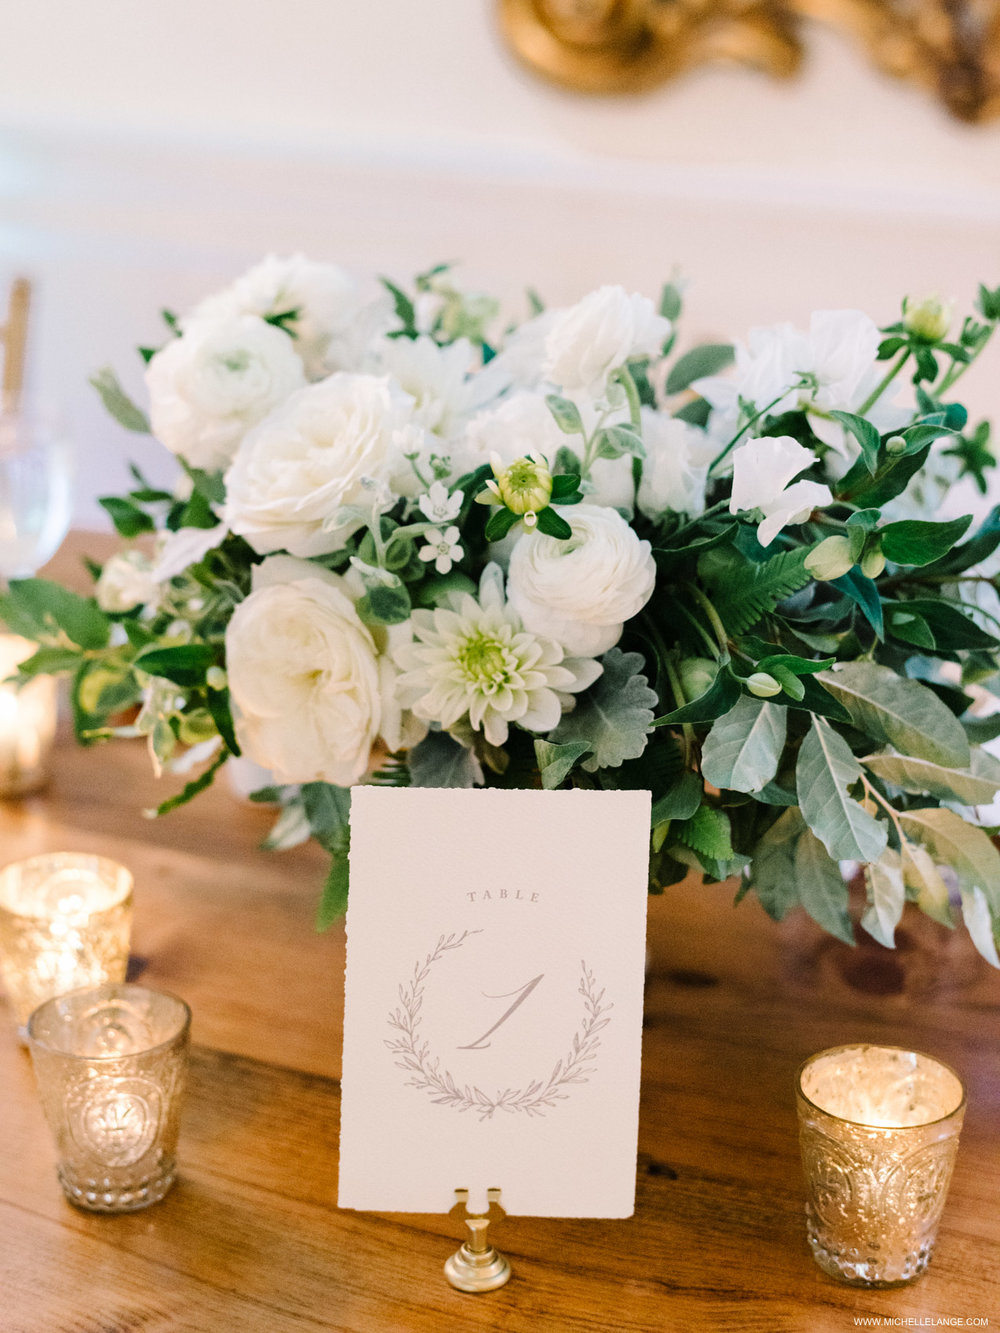 NY Wedding Photographer at The Carltun Long Island with Ava Flora, Gilded Lily Events and Linen and Leaf